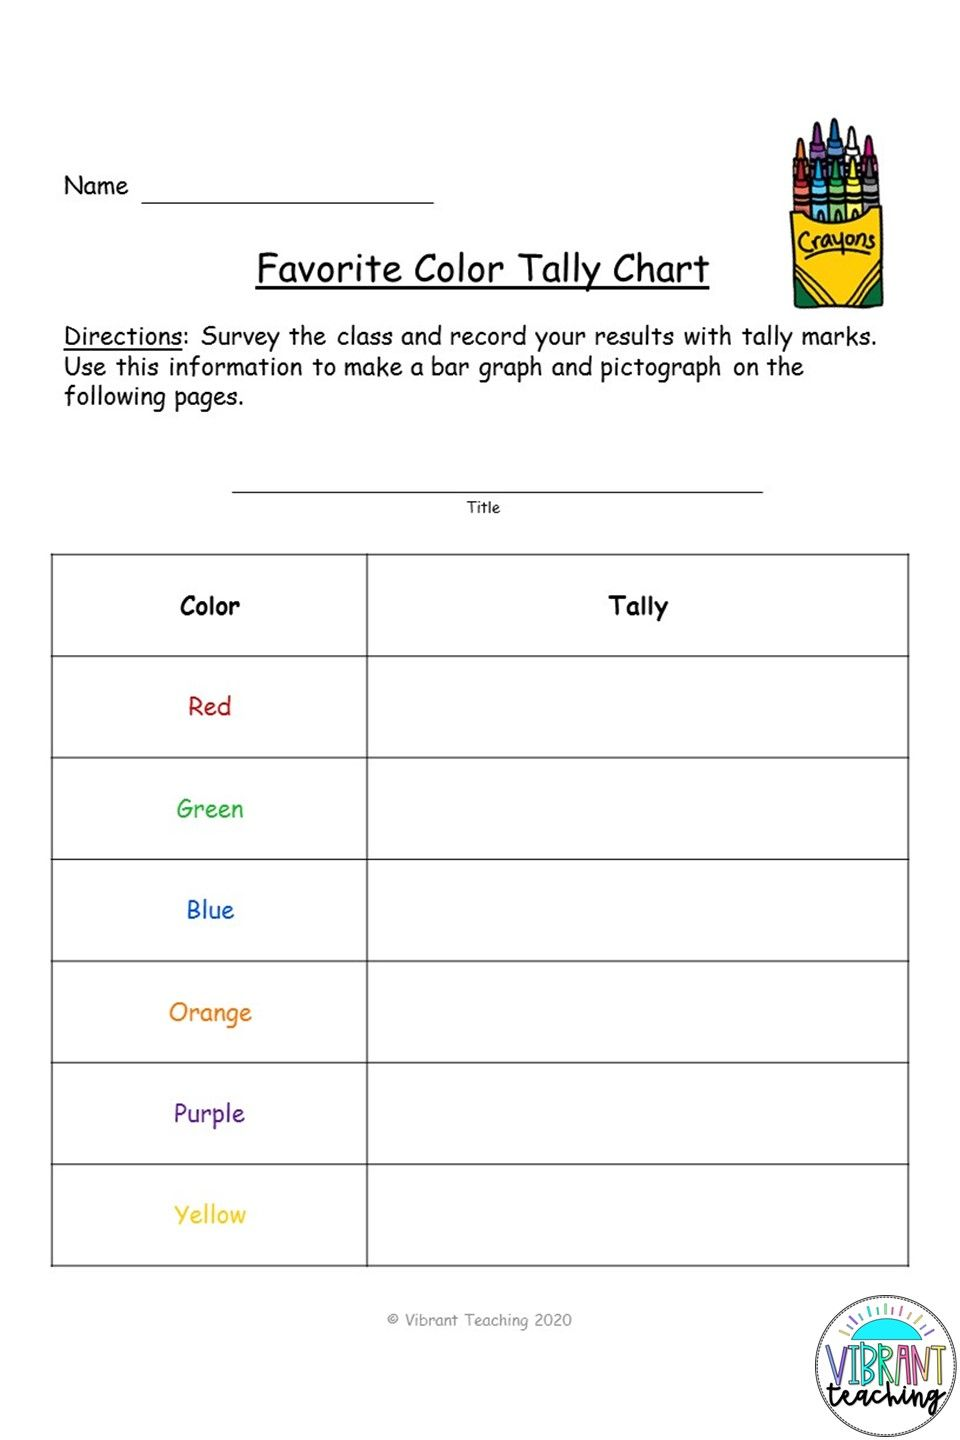 Tally Chart Worksheet Favorite Color Bar Graphs Graphing Tally Chart [ 1440 x 960 Pixel ]